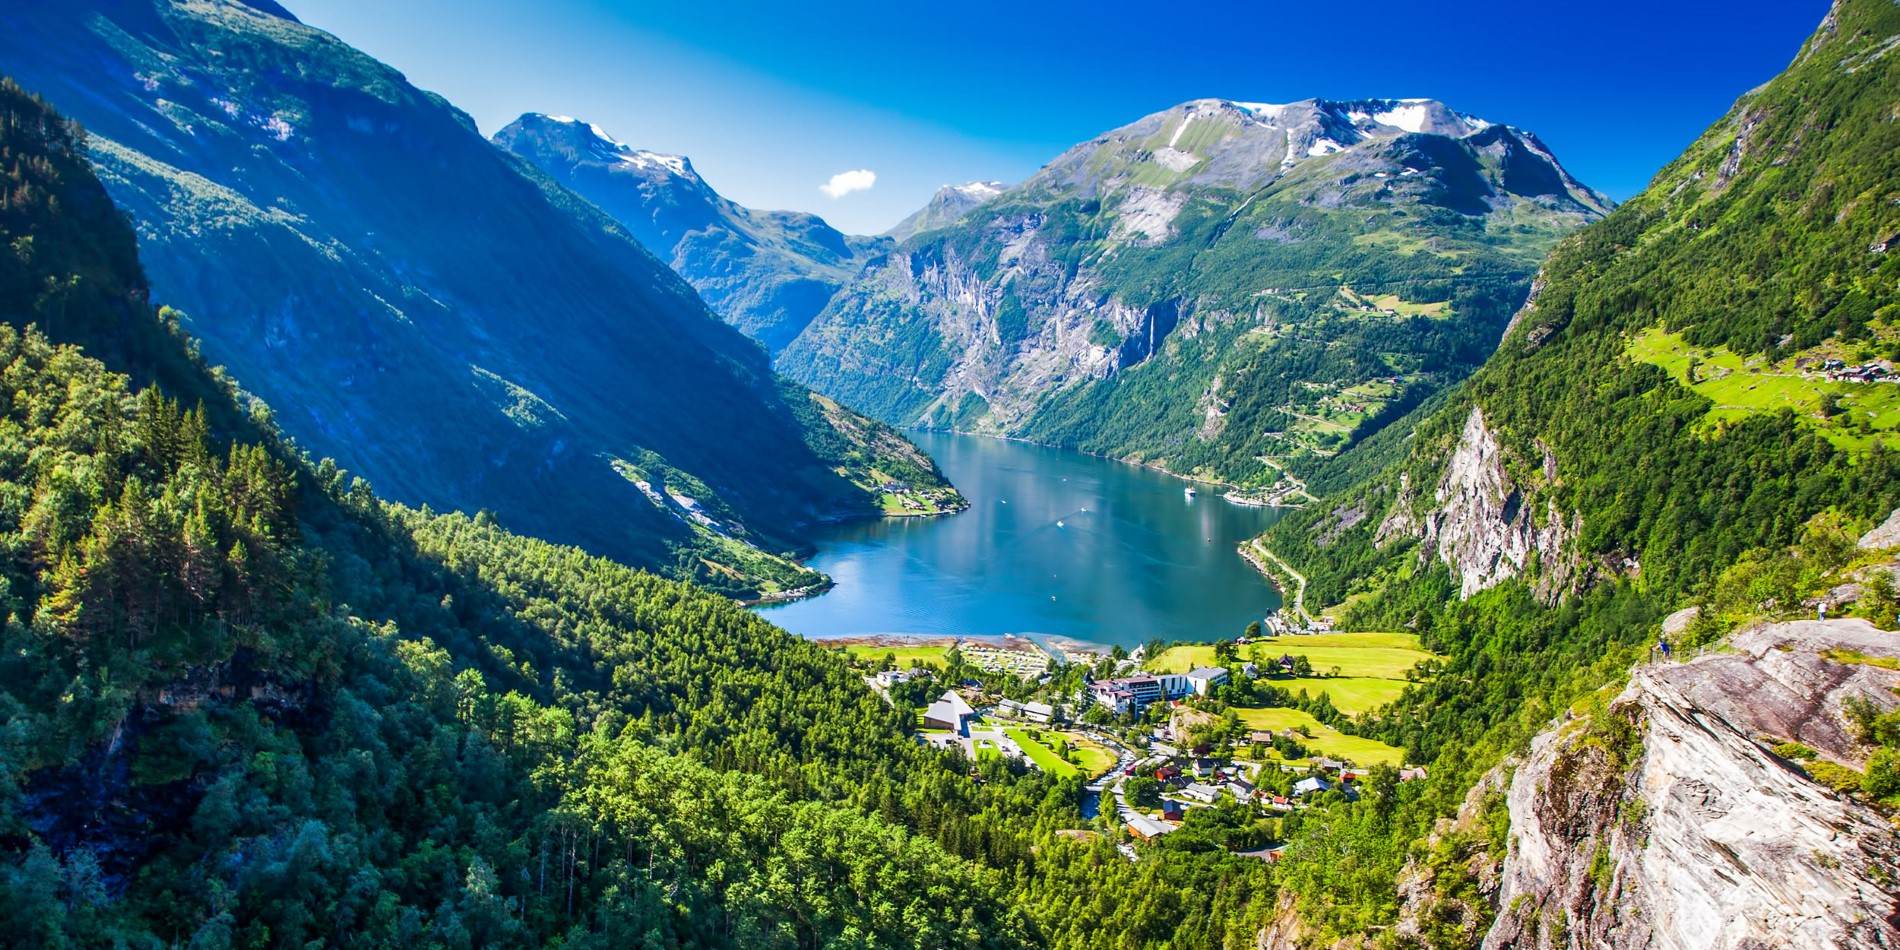 Geiranger and the fjord